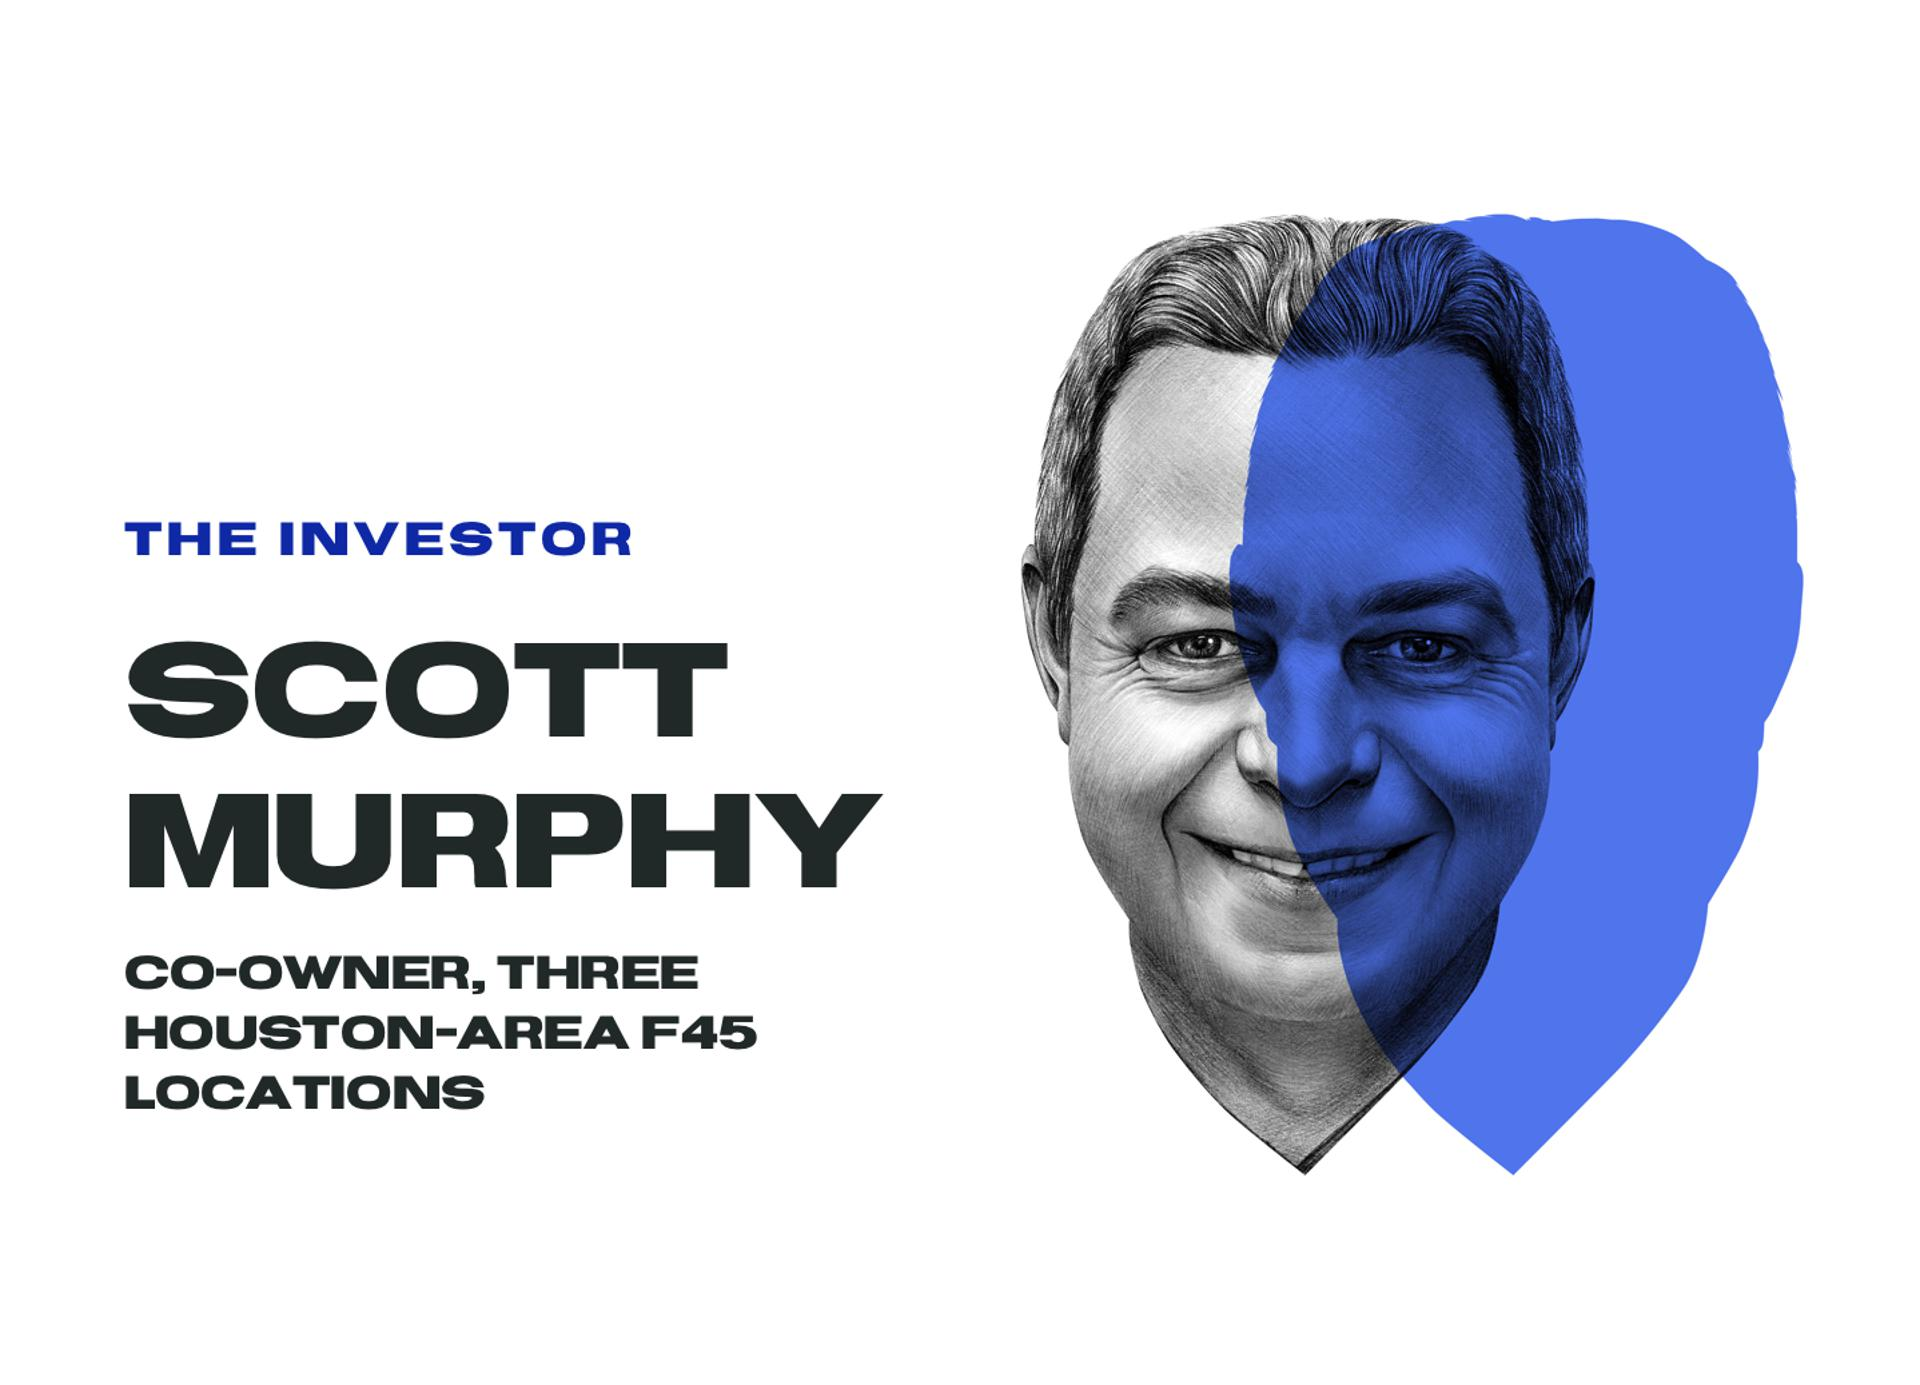 The investor, Scott Murphy, co-owner, three Houston-area F45 locations